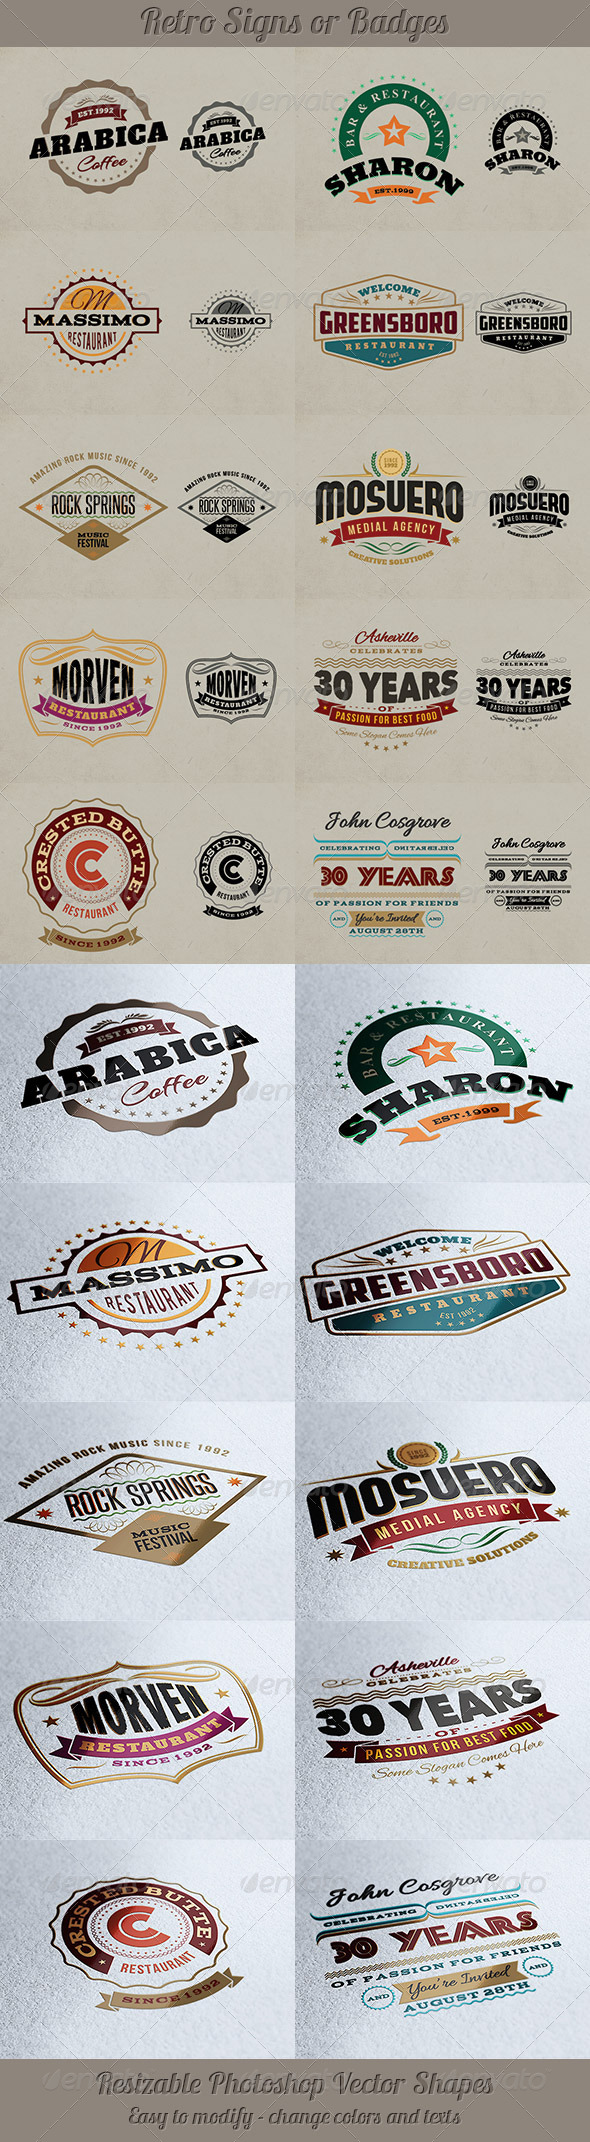 GraphicRiver Retro Signs or Banners 4587386